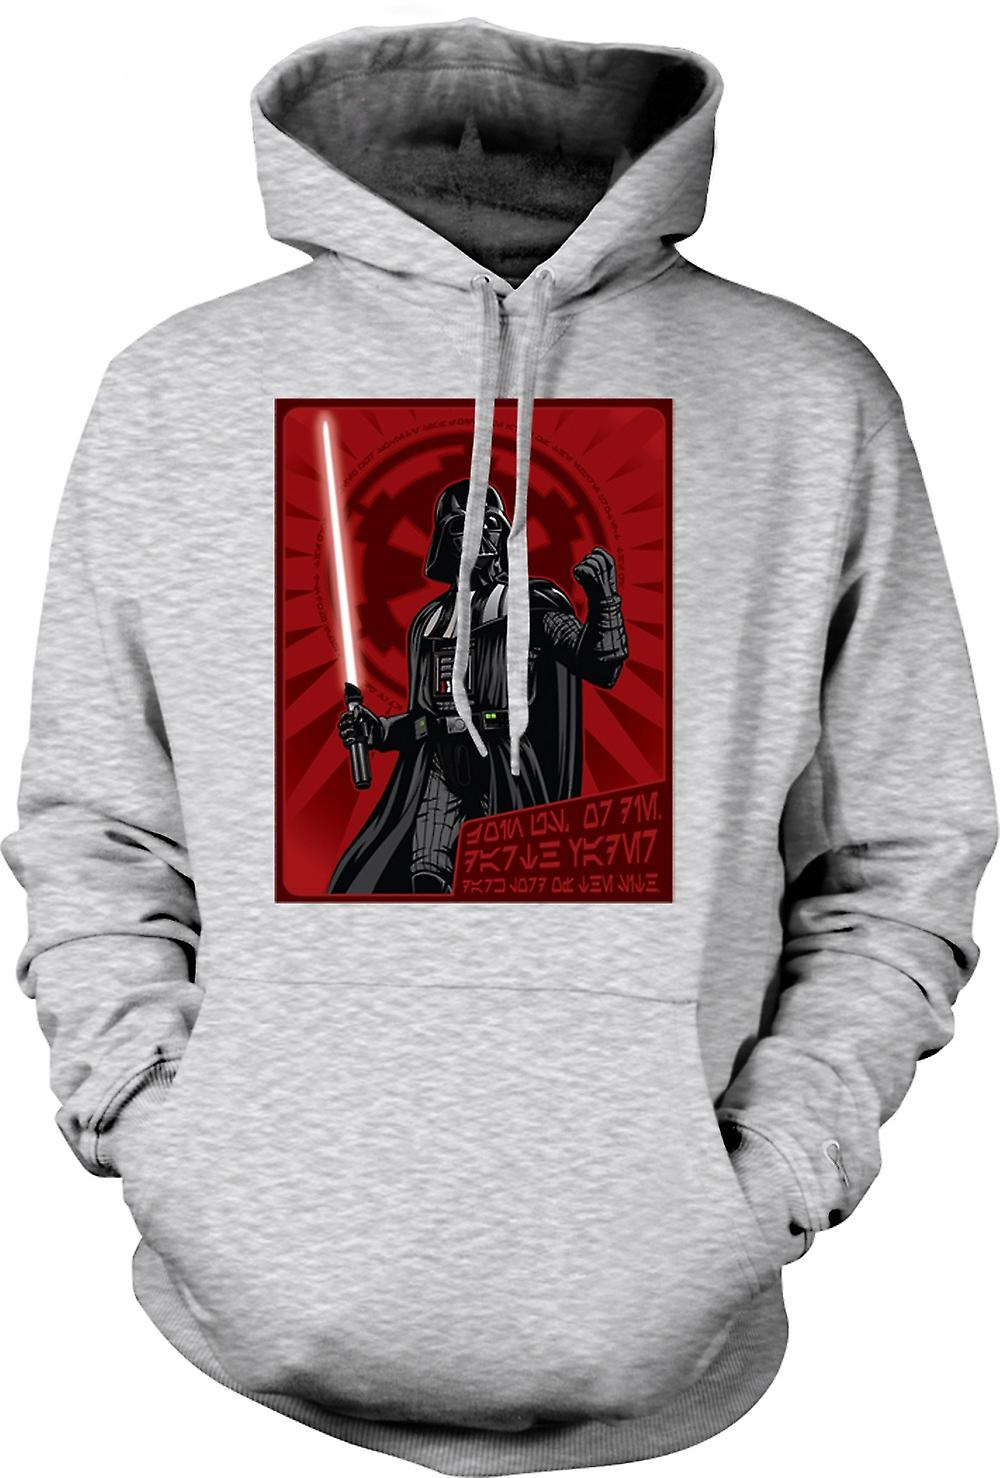 Mens Hoodie - Darth Vader - Star Wars - Japanese